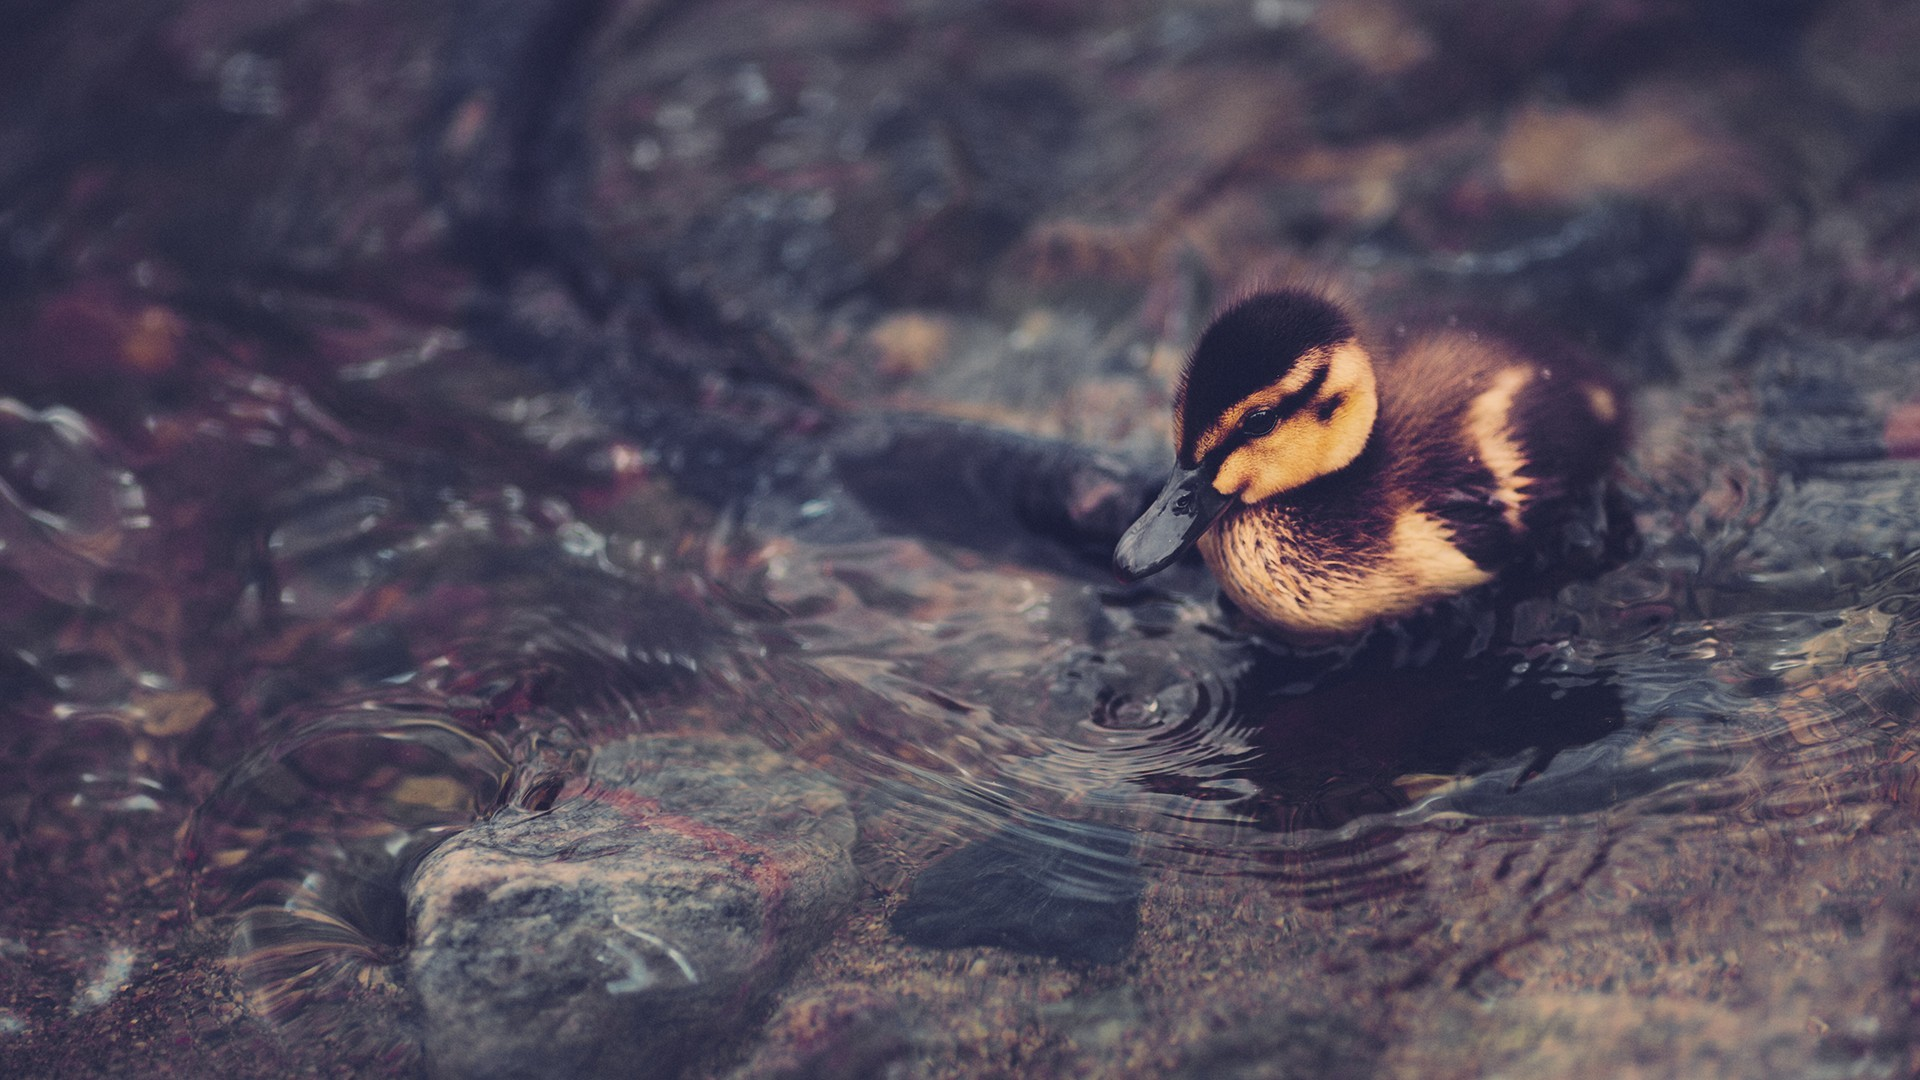 General 1920x1080 animals duck water outdoors